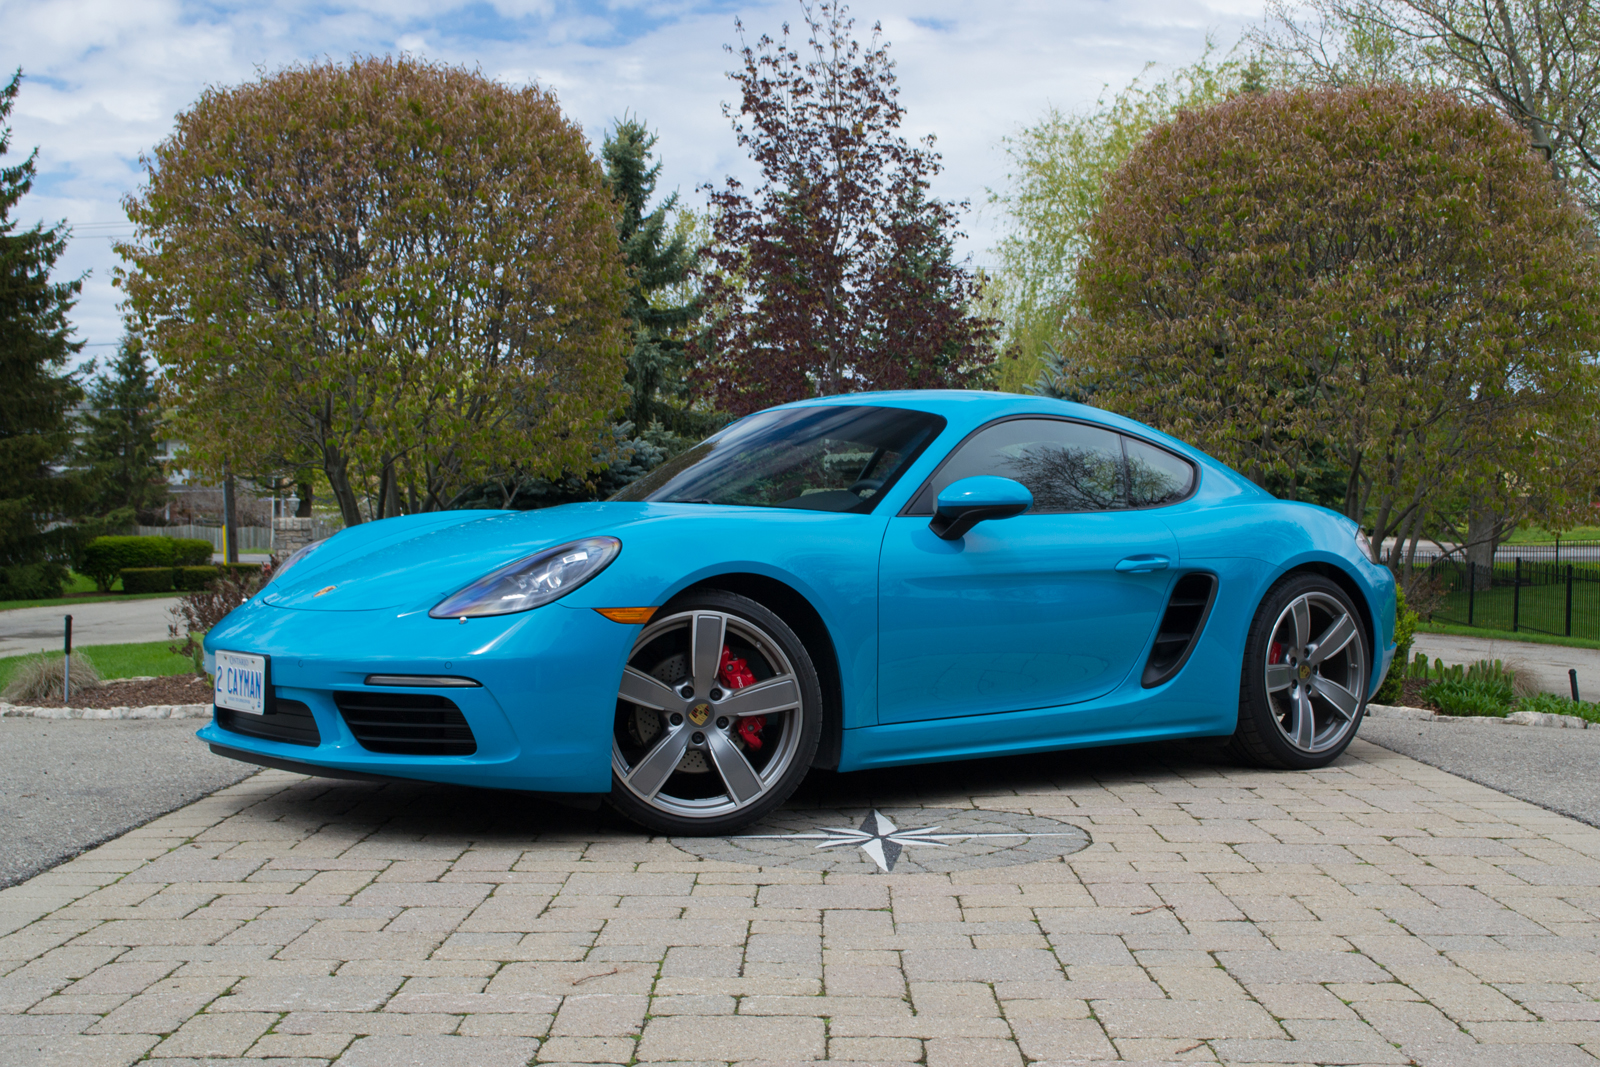 2017 porsche 718 cayman s review - autoguide